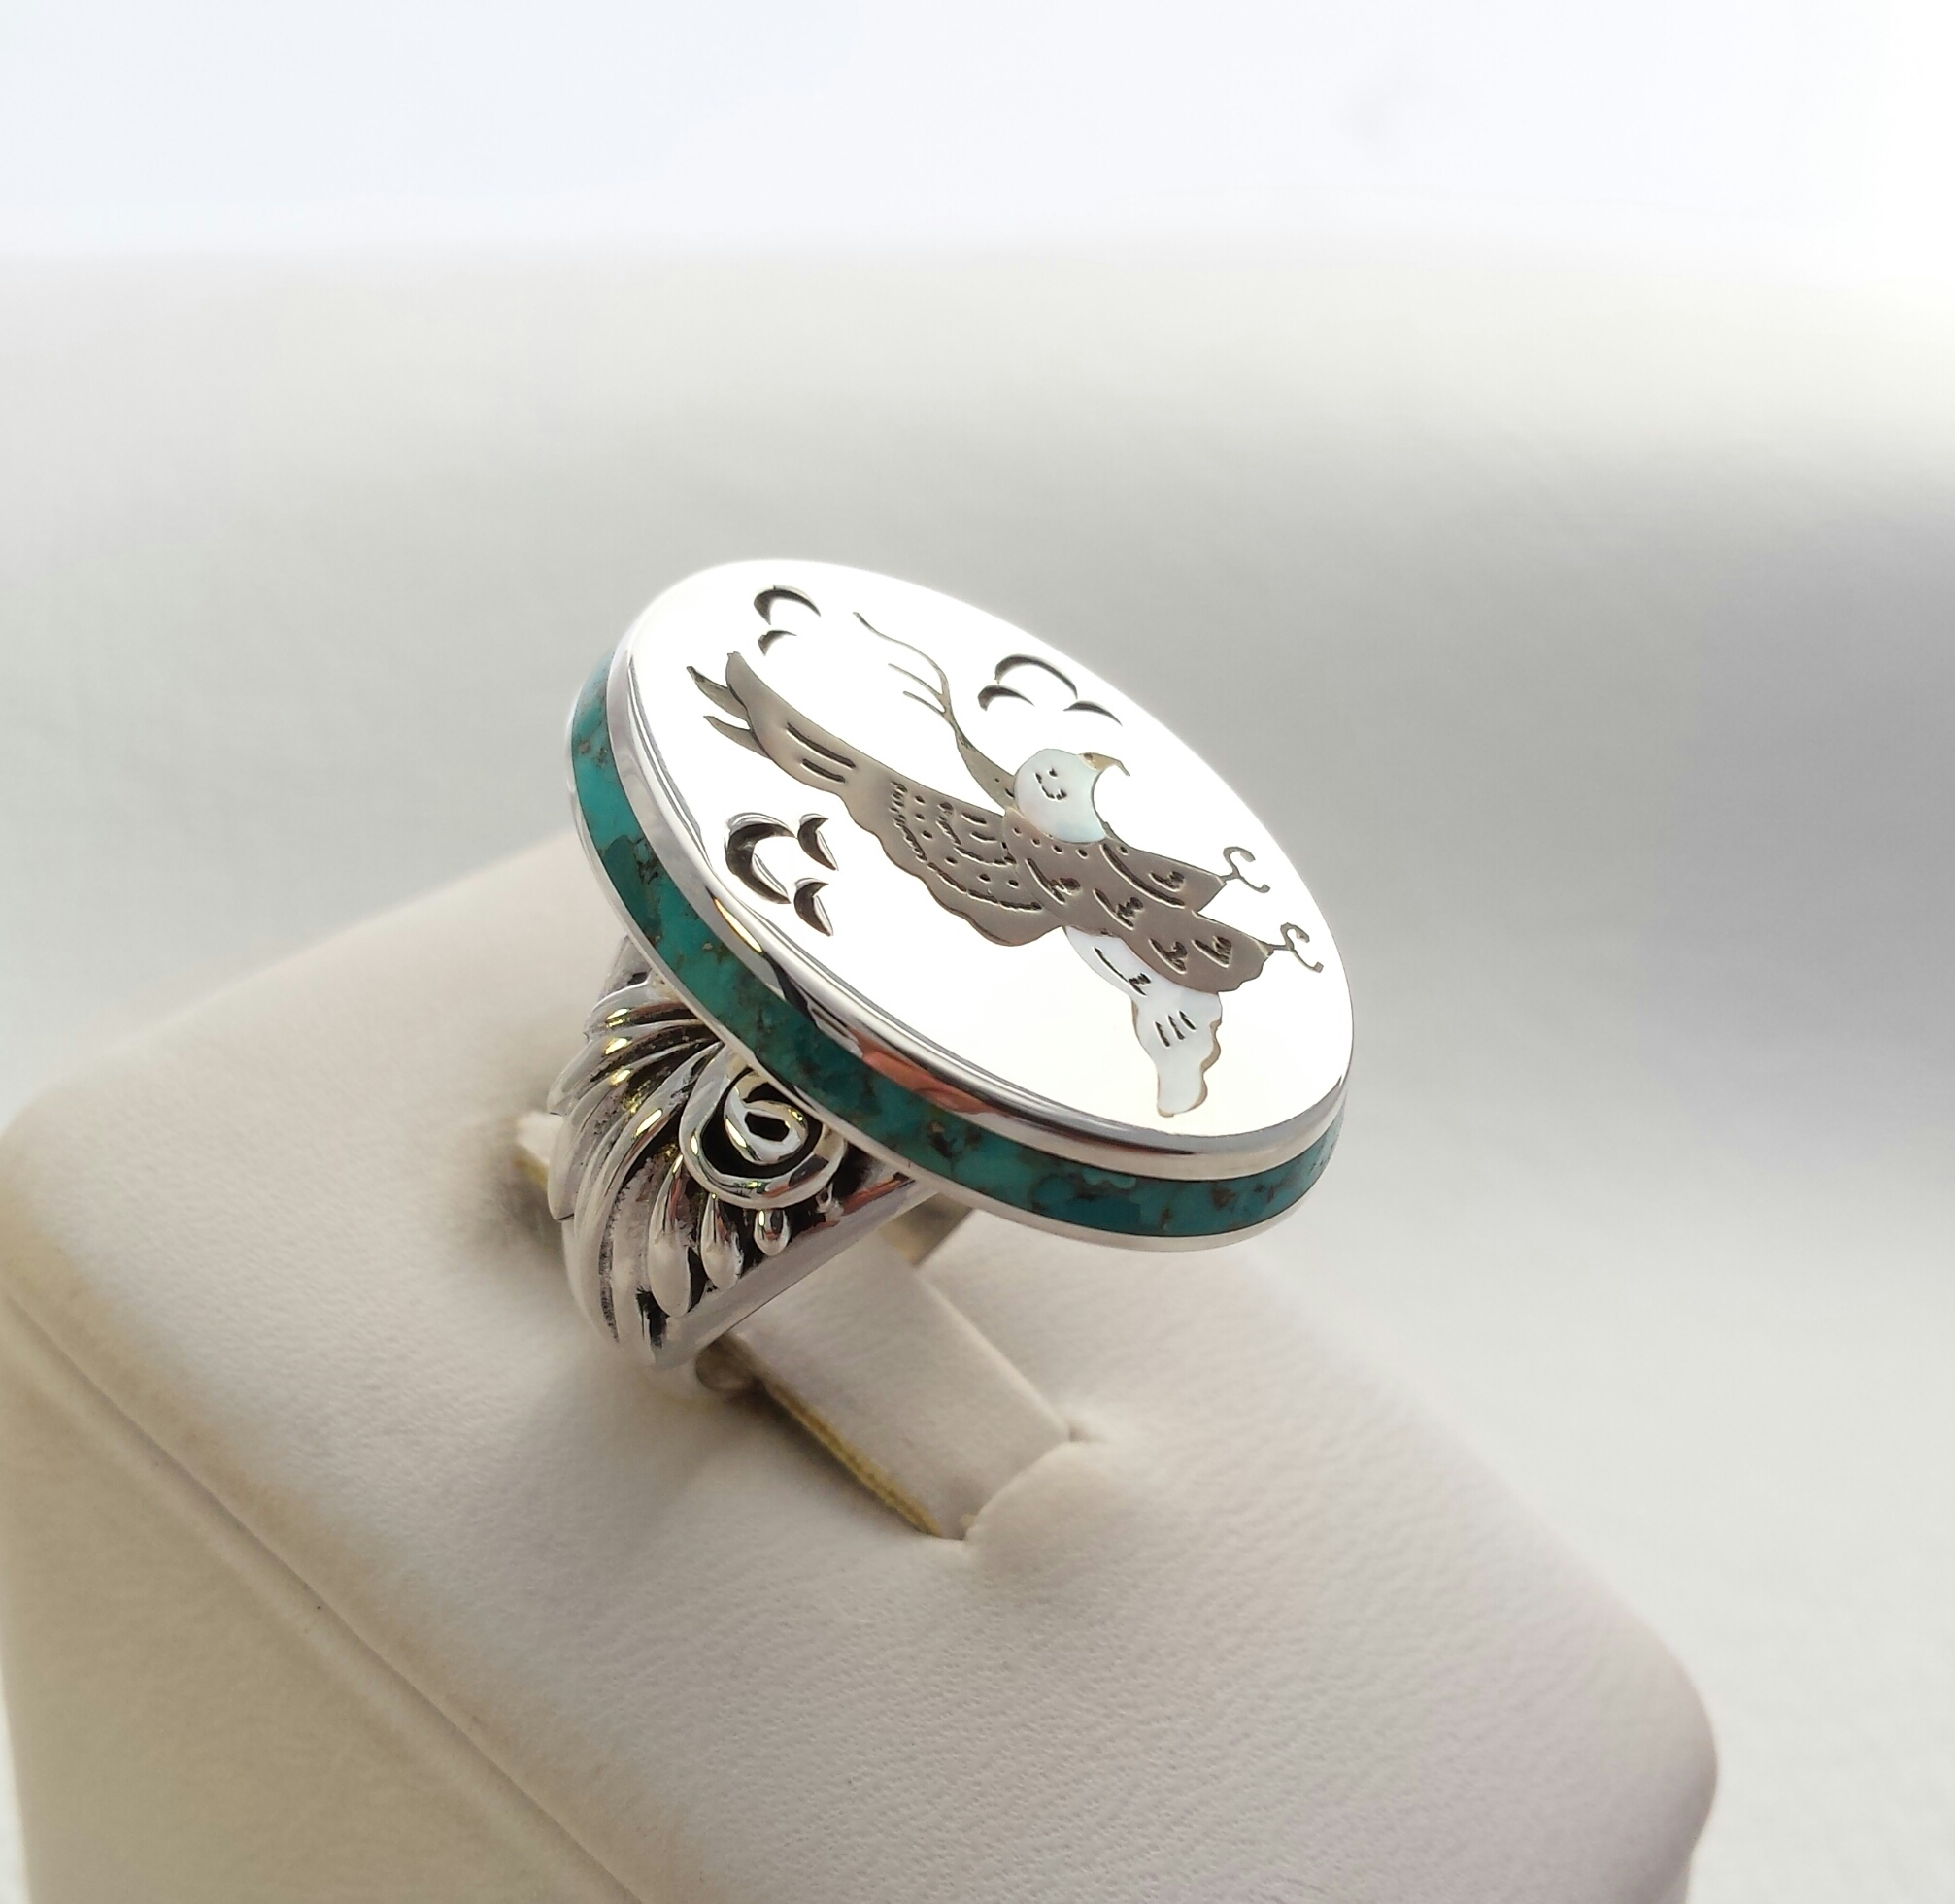 Sterling silver ring inlaid with turquoise, Mother of Pearl and Black Penshell. Eagle inlaid on face